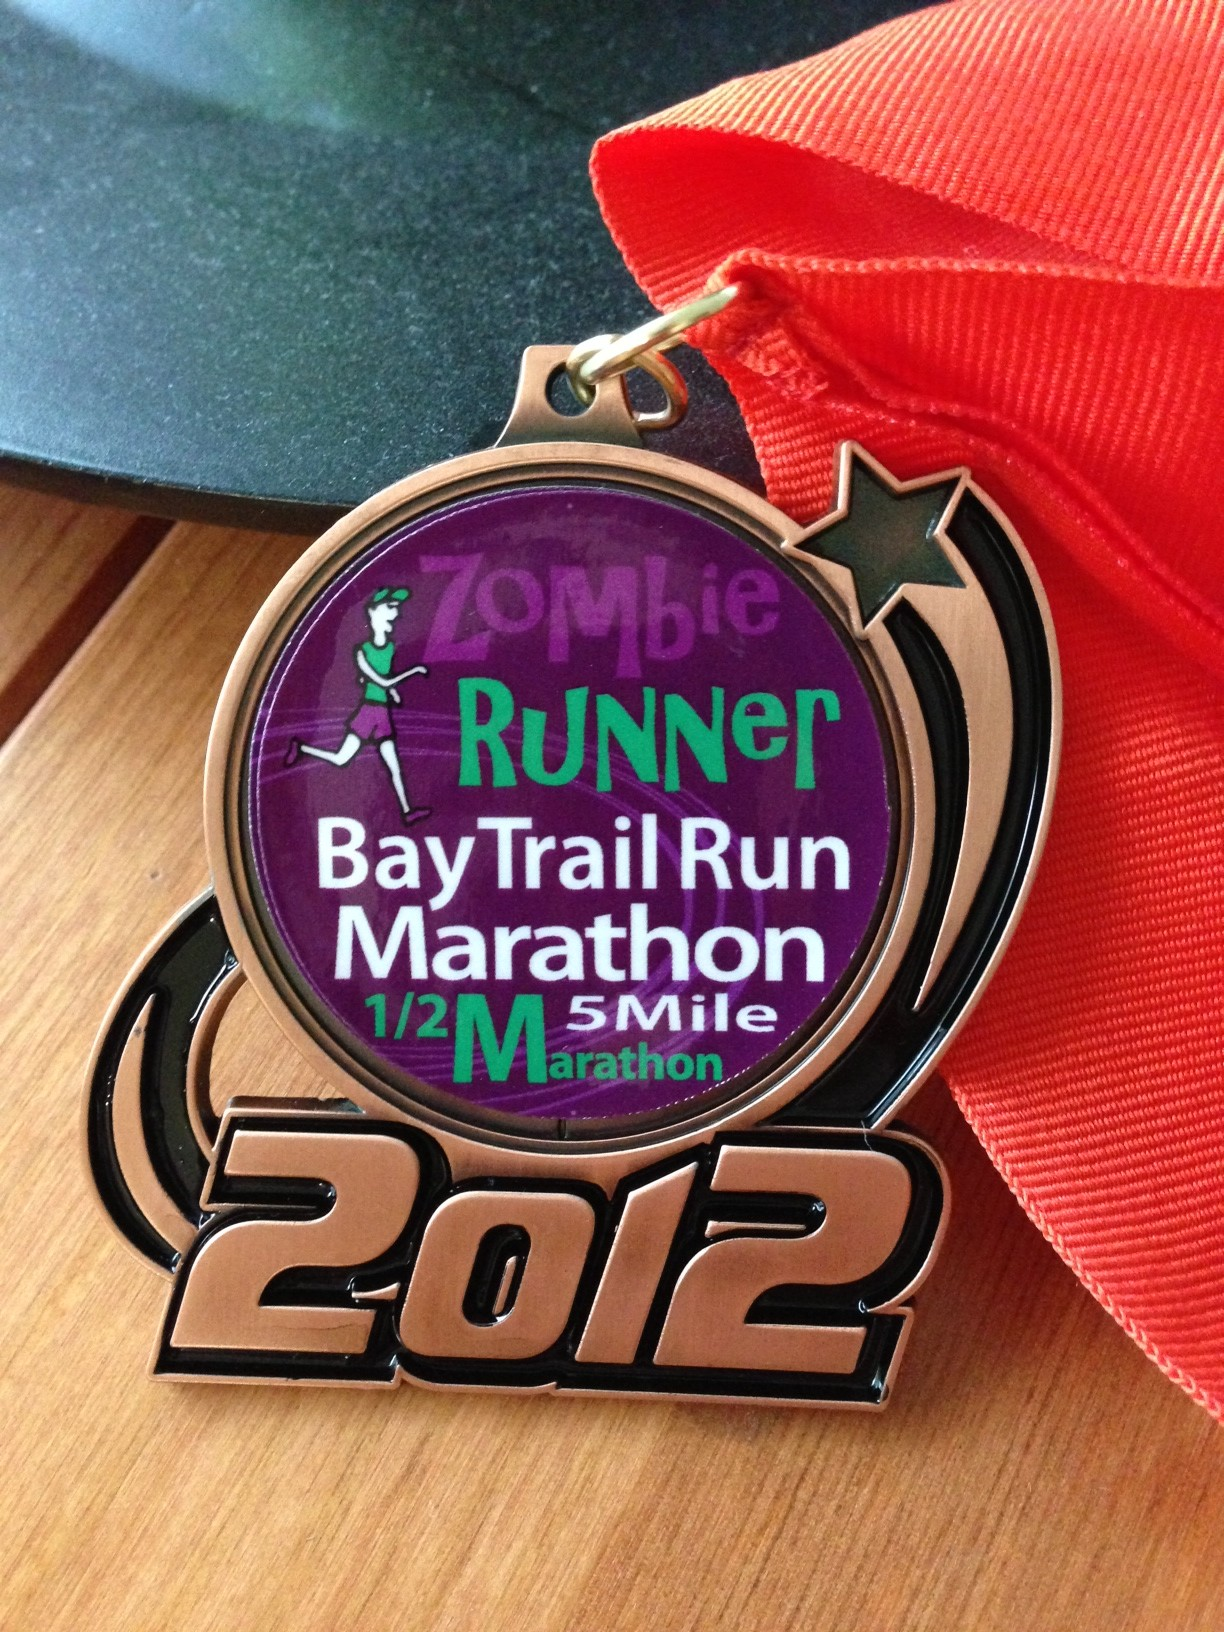 ZombieRunner Bay Trail 5-mile Race Medal